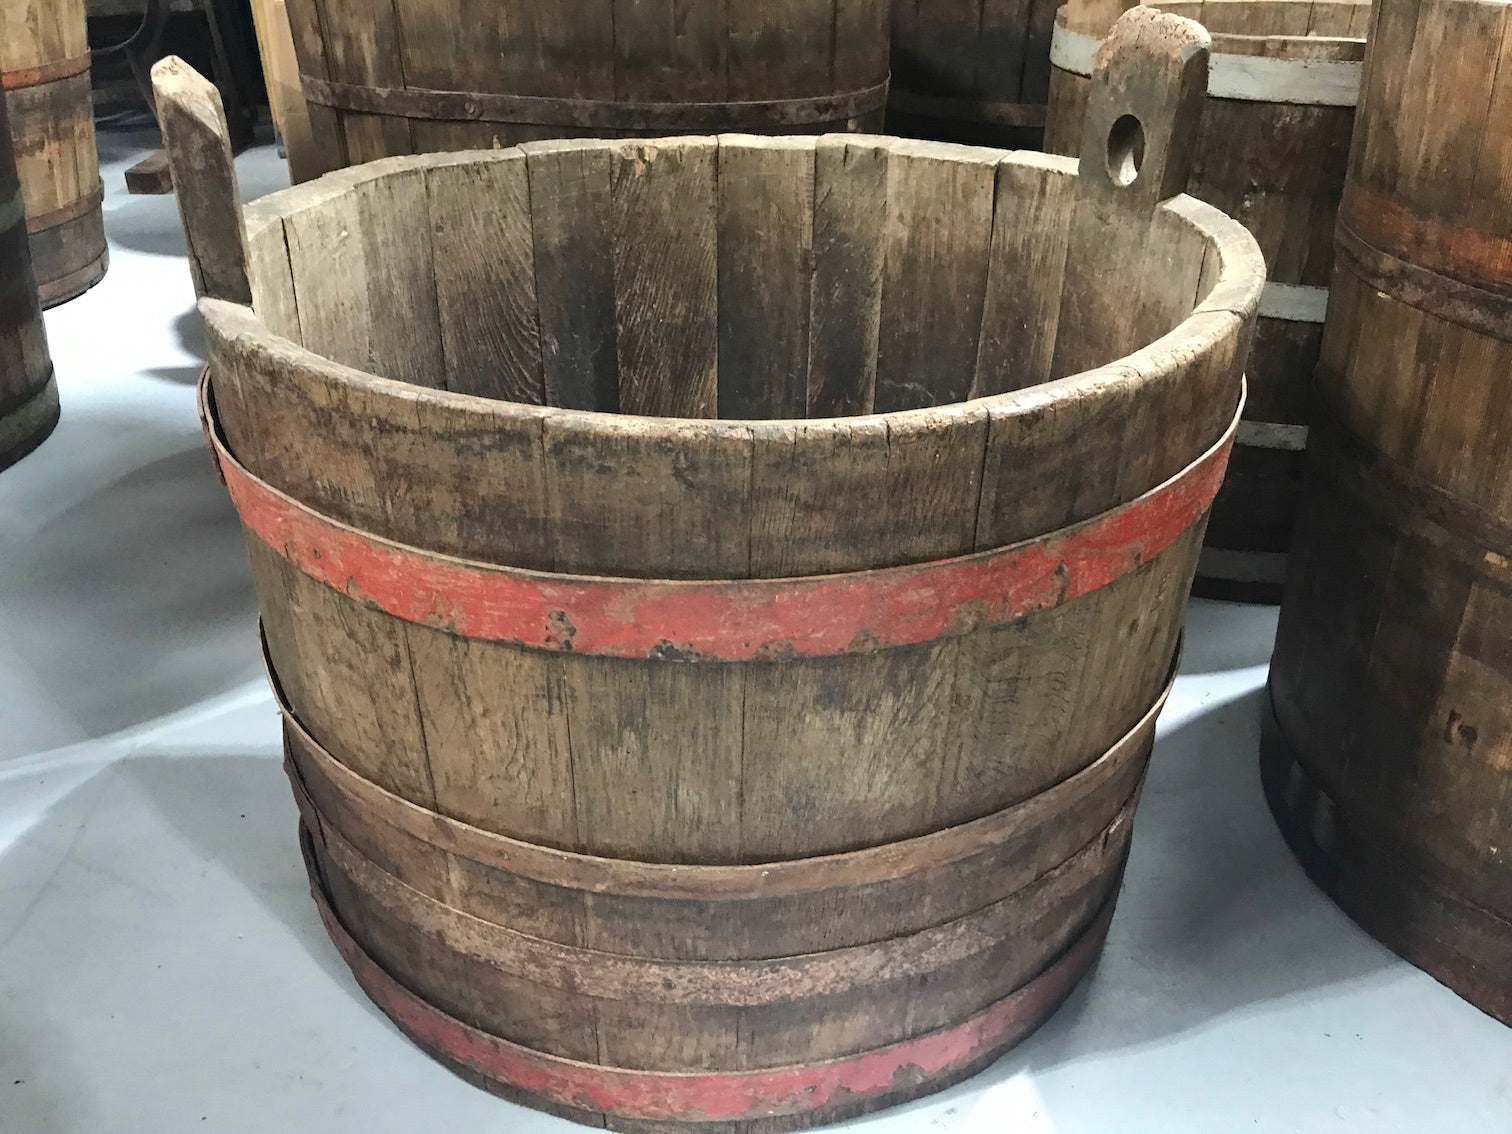 Vintage industrial French oak round wine barrel #1991/9